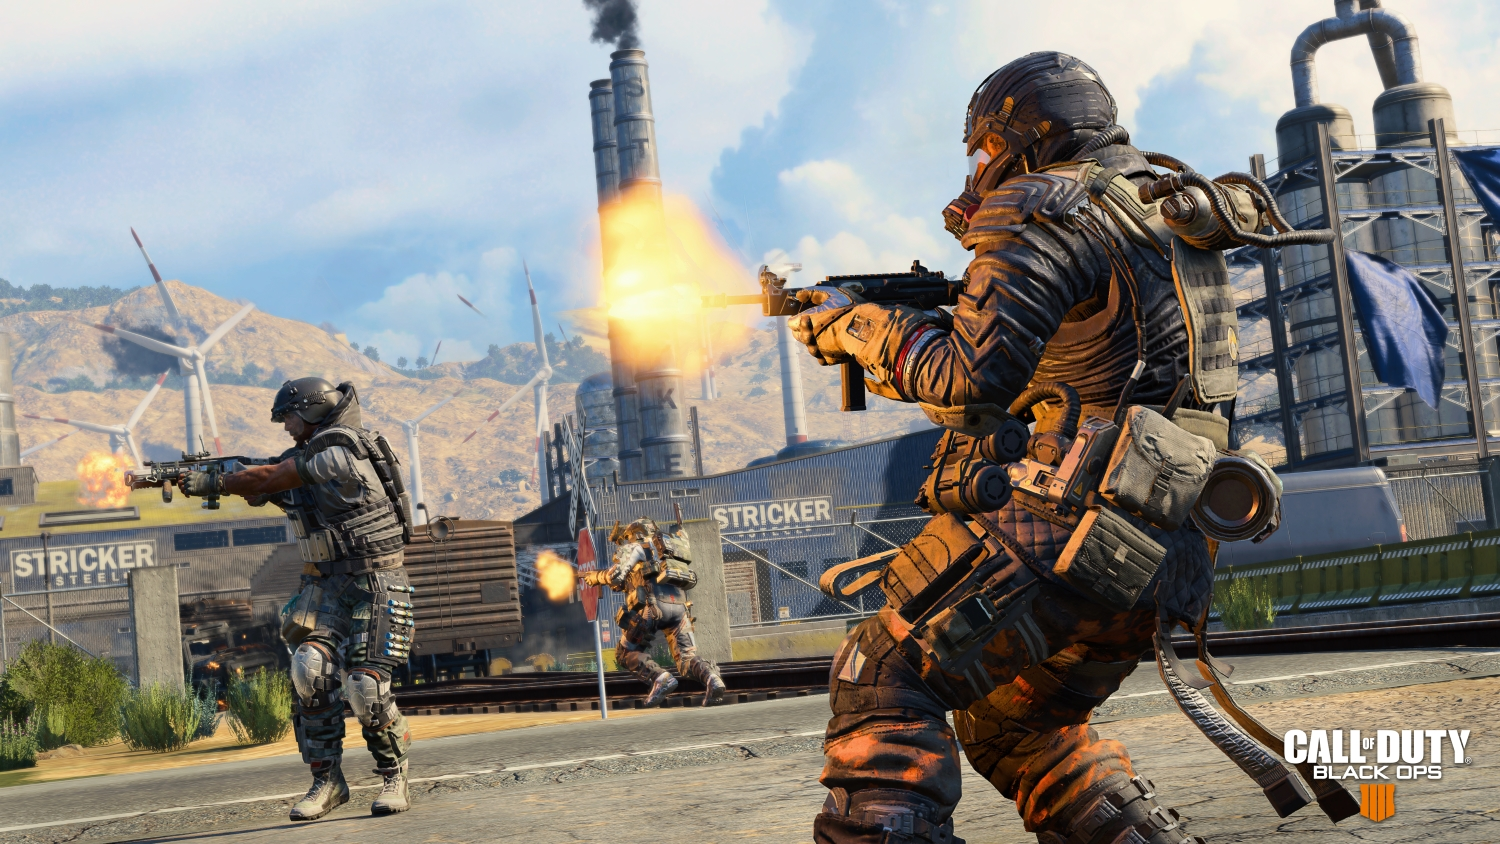 Call Of Duty: Black Ops 4 Blackout beta review – the new king of Battle Royale?